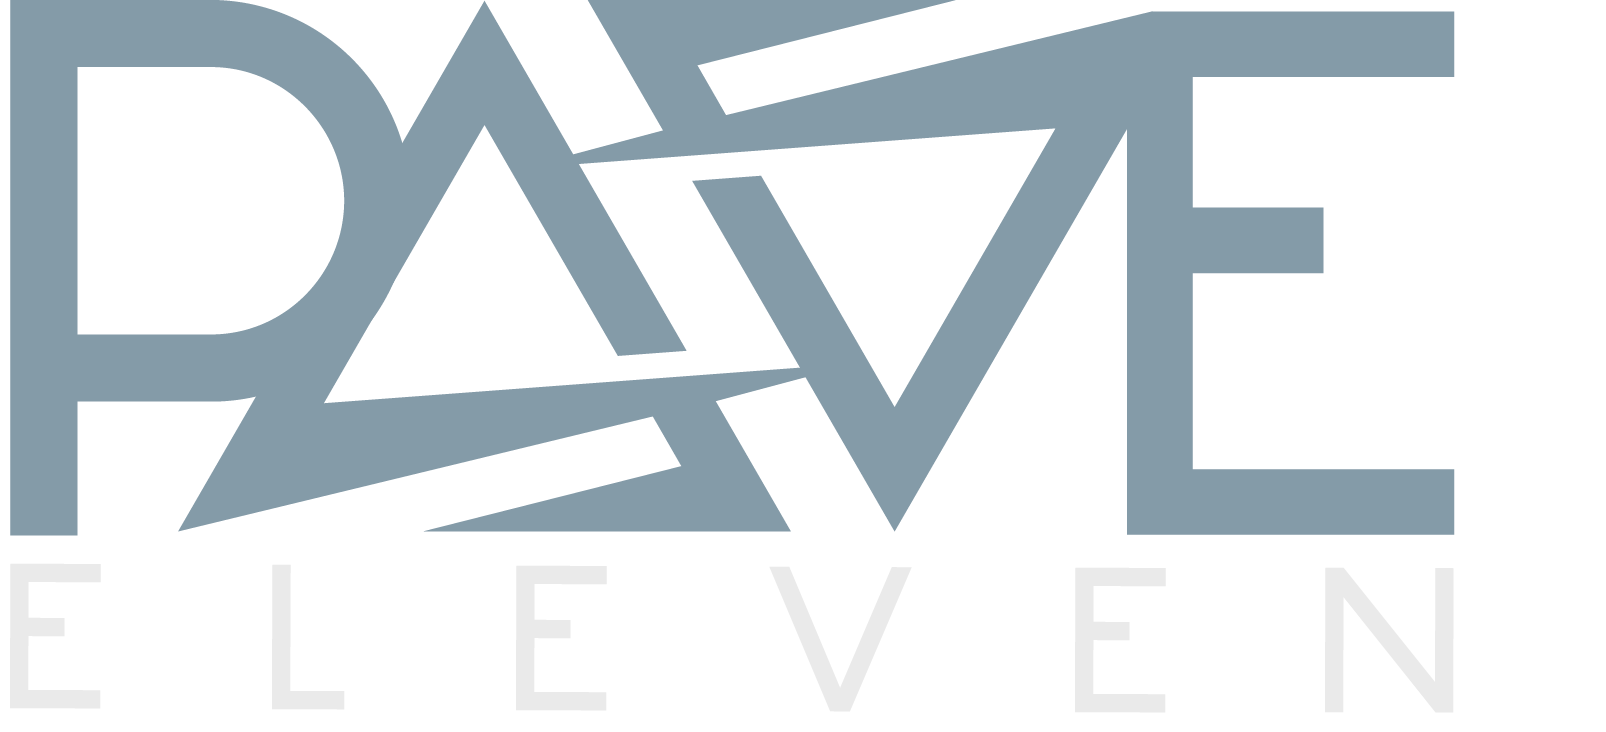 PAVE ELEVEN